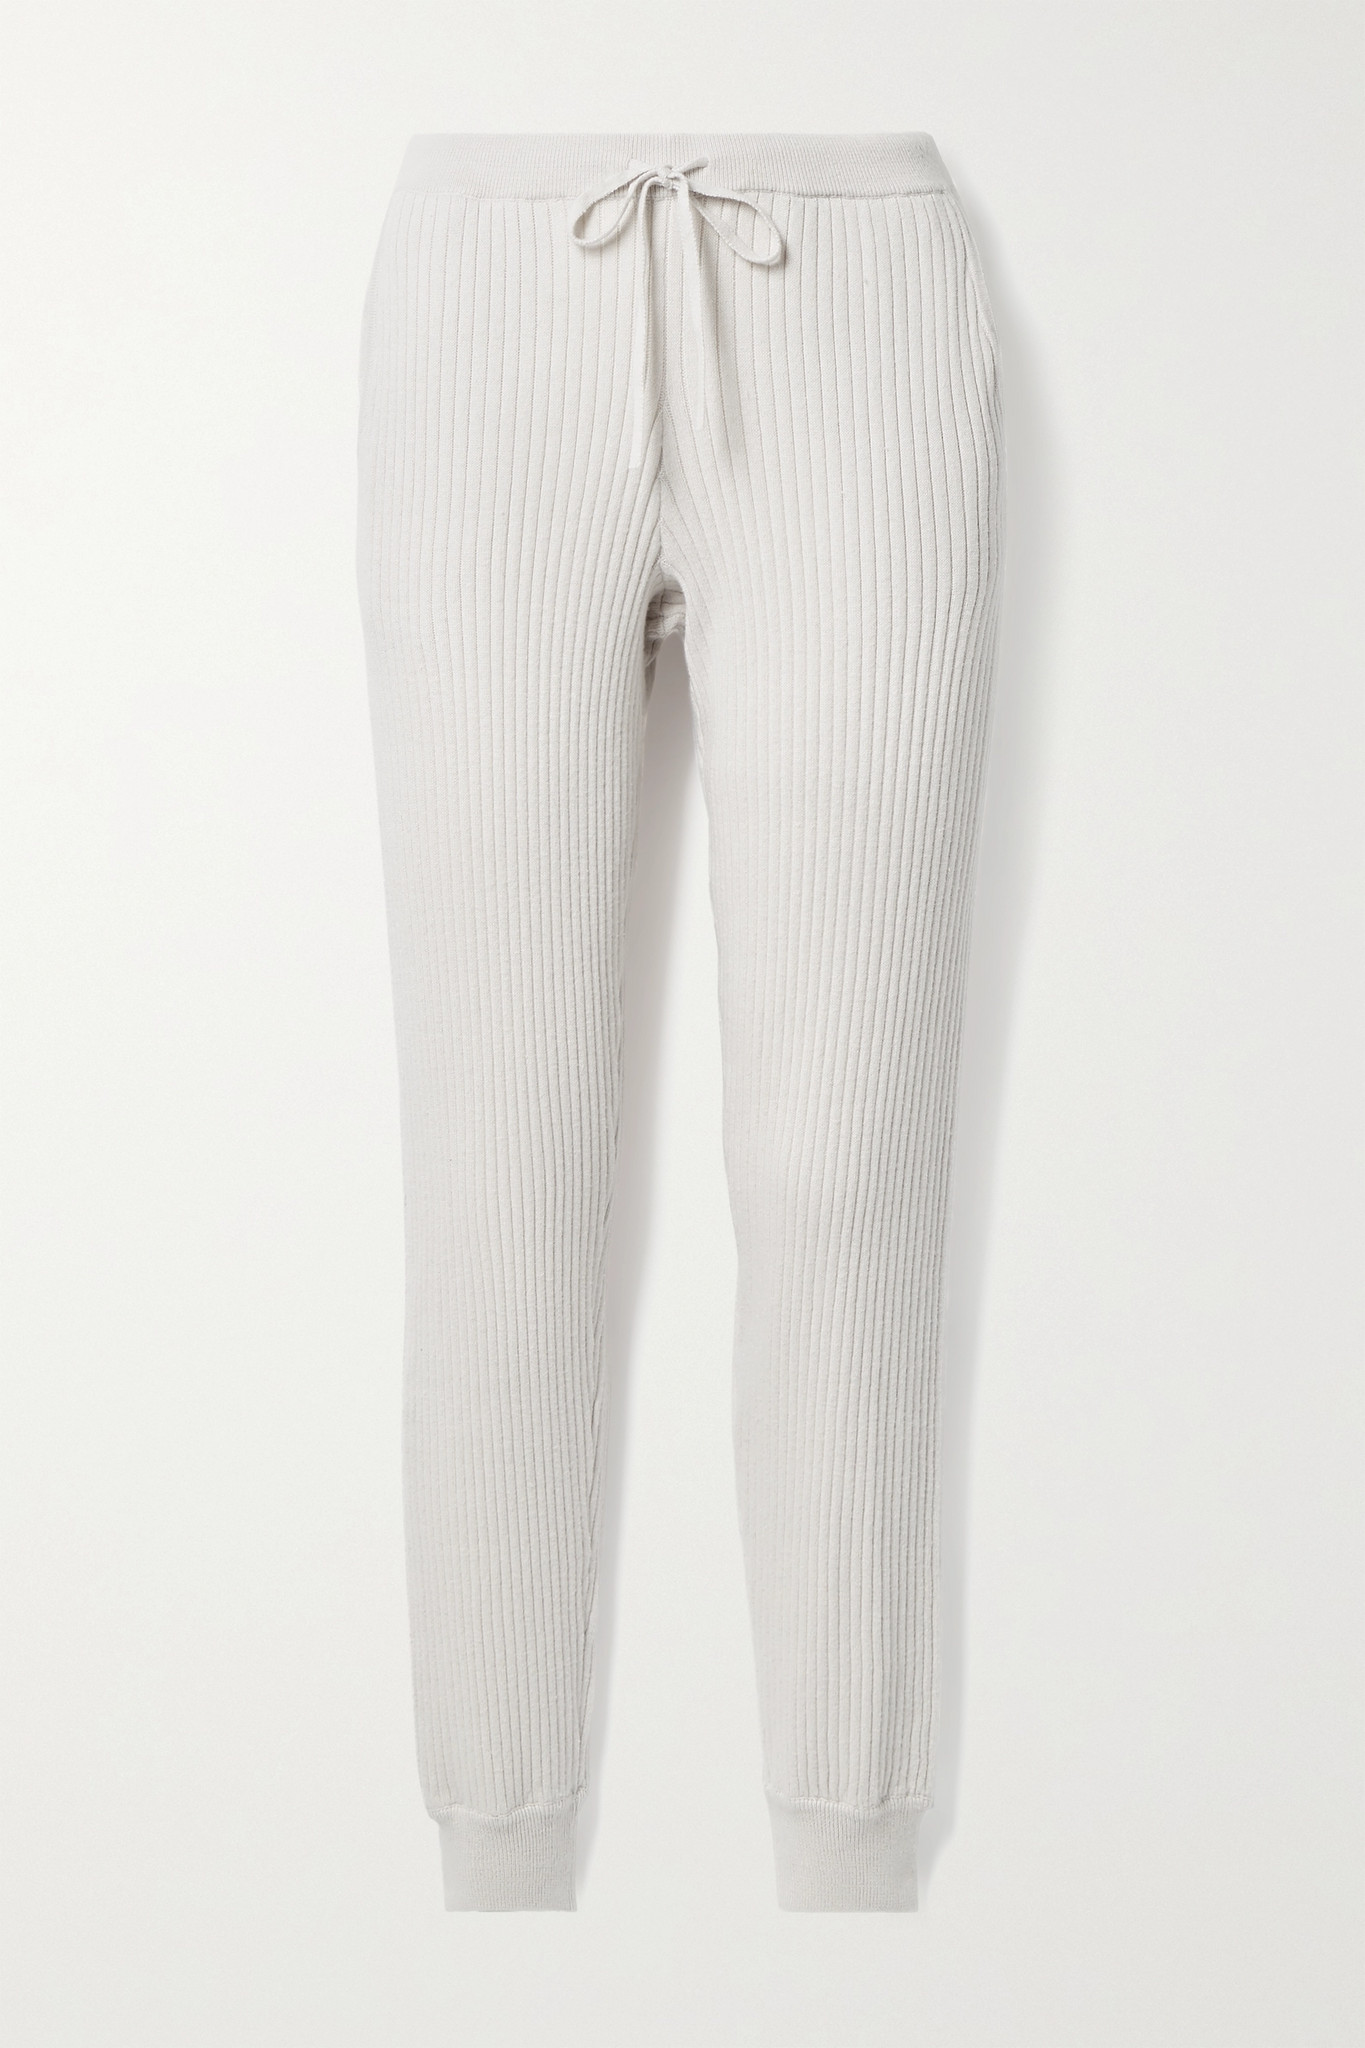 SKIN - Maizie Ribbed Cotton And Cashmere-blend Track Pants - Off-white - small